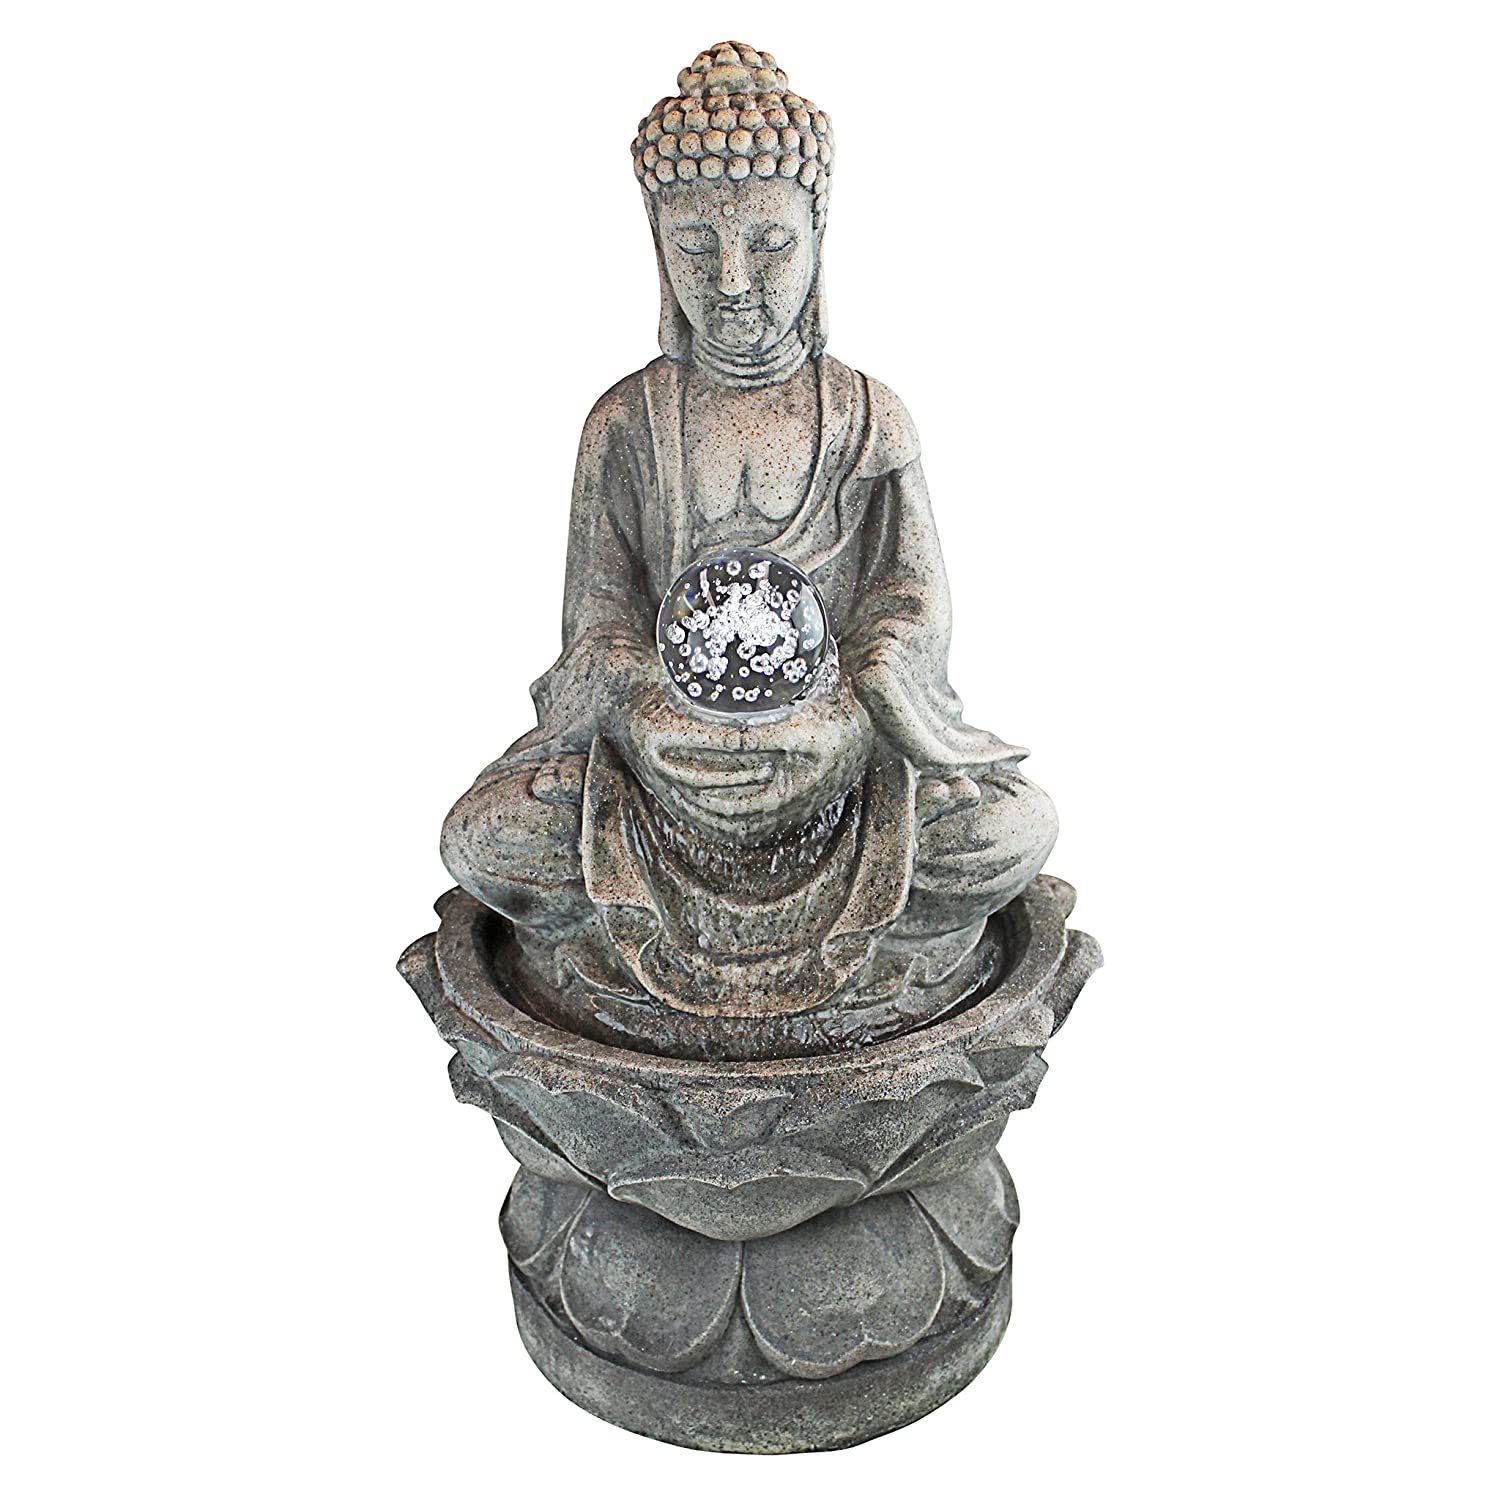 Design Toscano Spiritual Serenity Spinning Crystal Ball Buddha Table Top Water Feature with LED Lights, Greystone